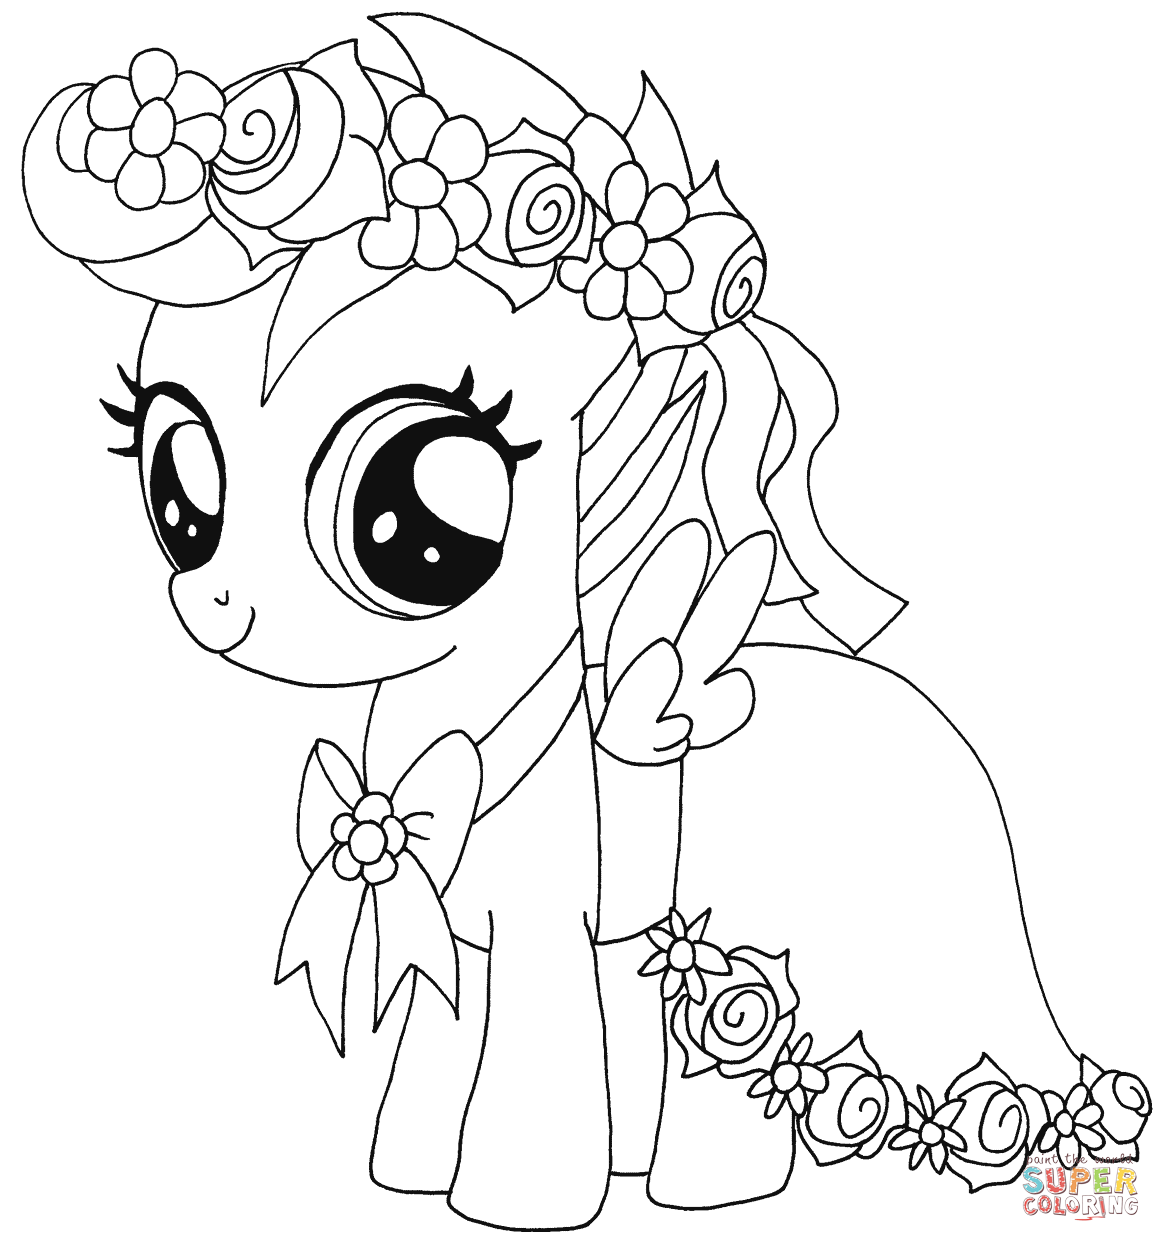 my little pony print outs my little pony scootaloo coloring page free printable my print outs little pony